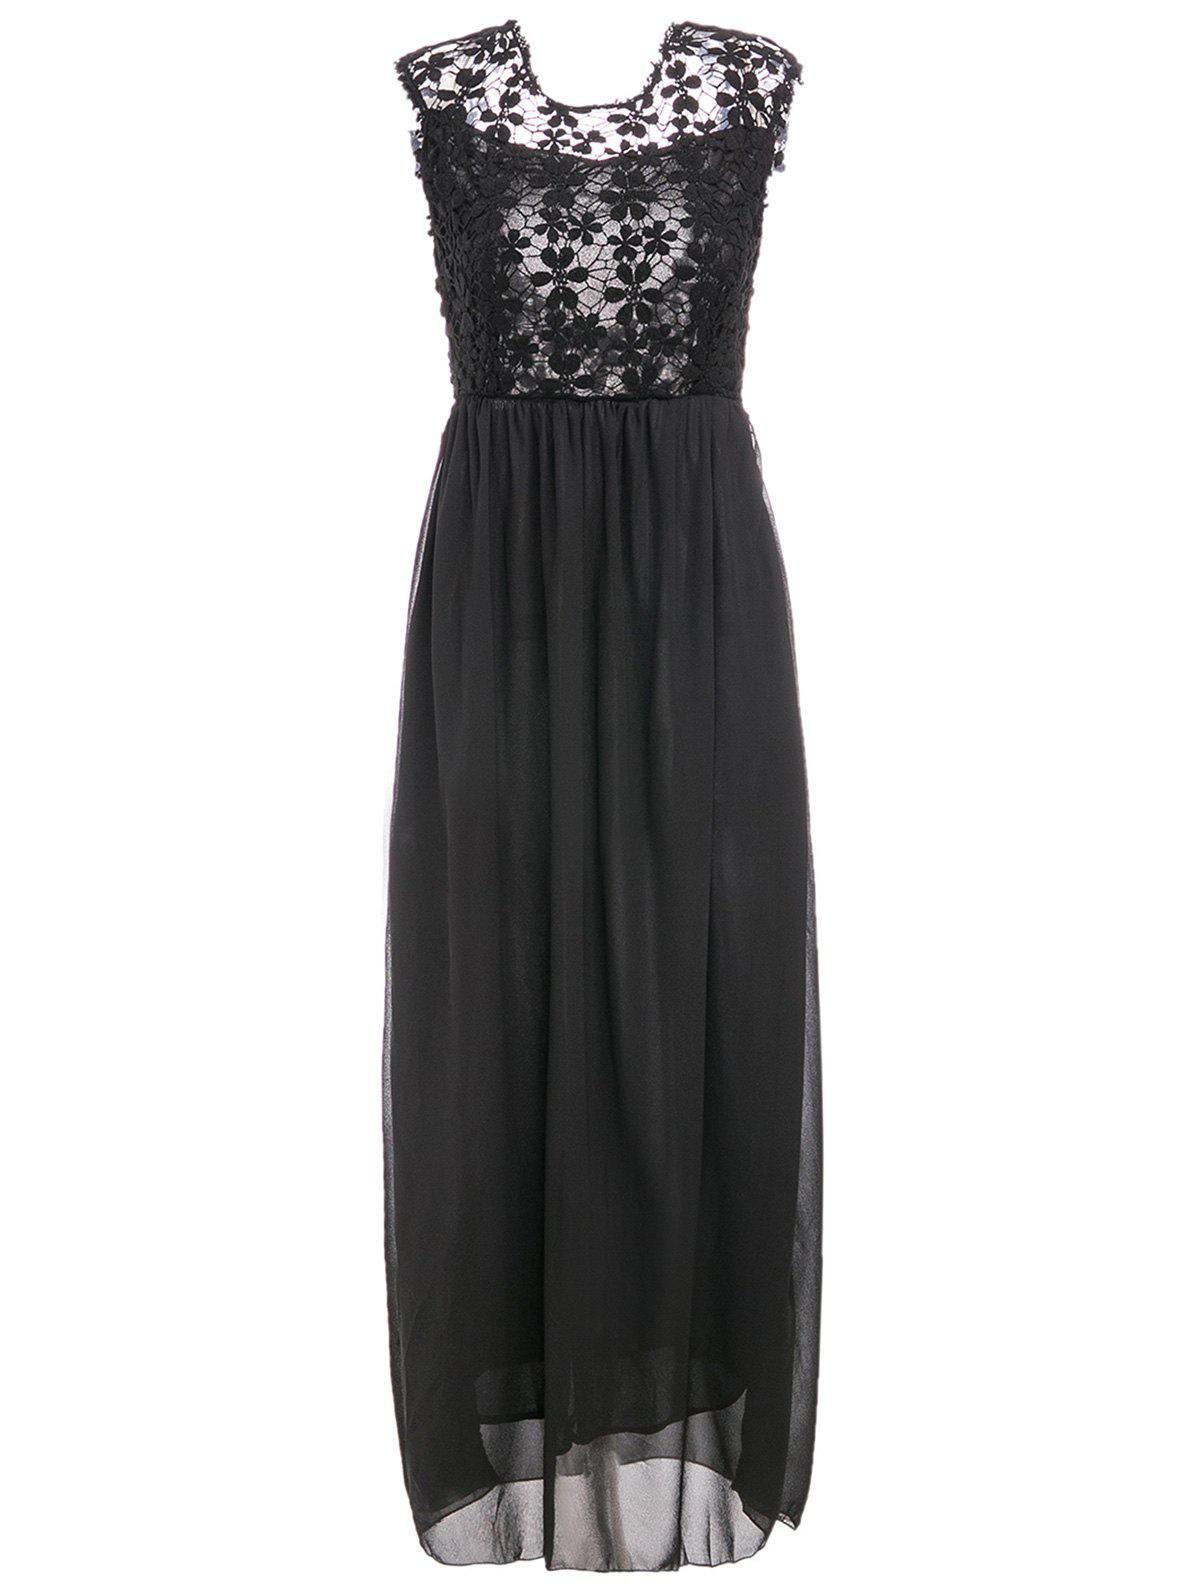 Sexy Style Backless Sleeveless Round Collar Hollow Out Design Maxi Dress - BLACK M